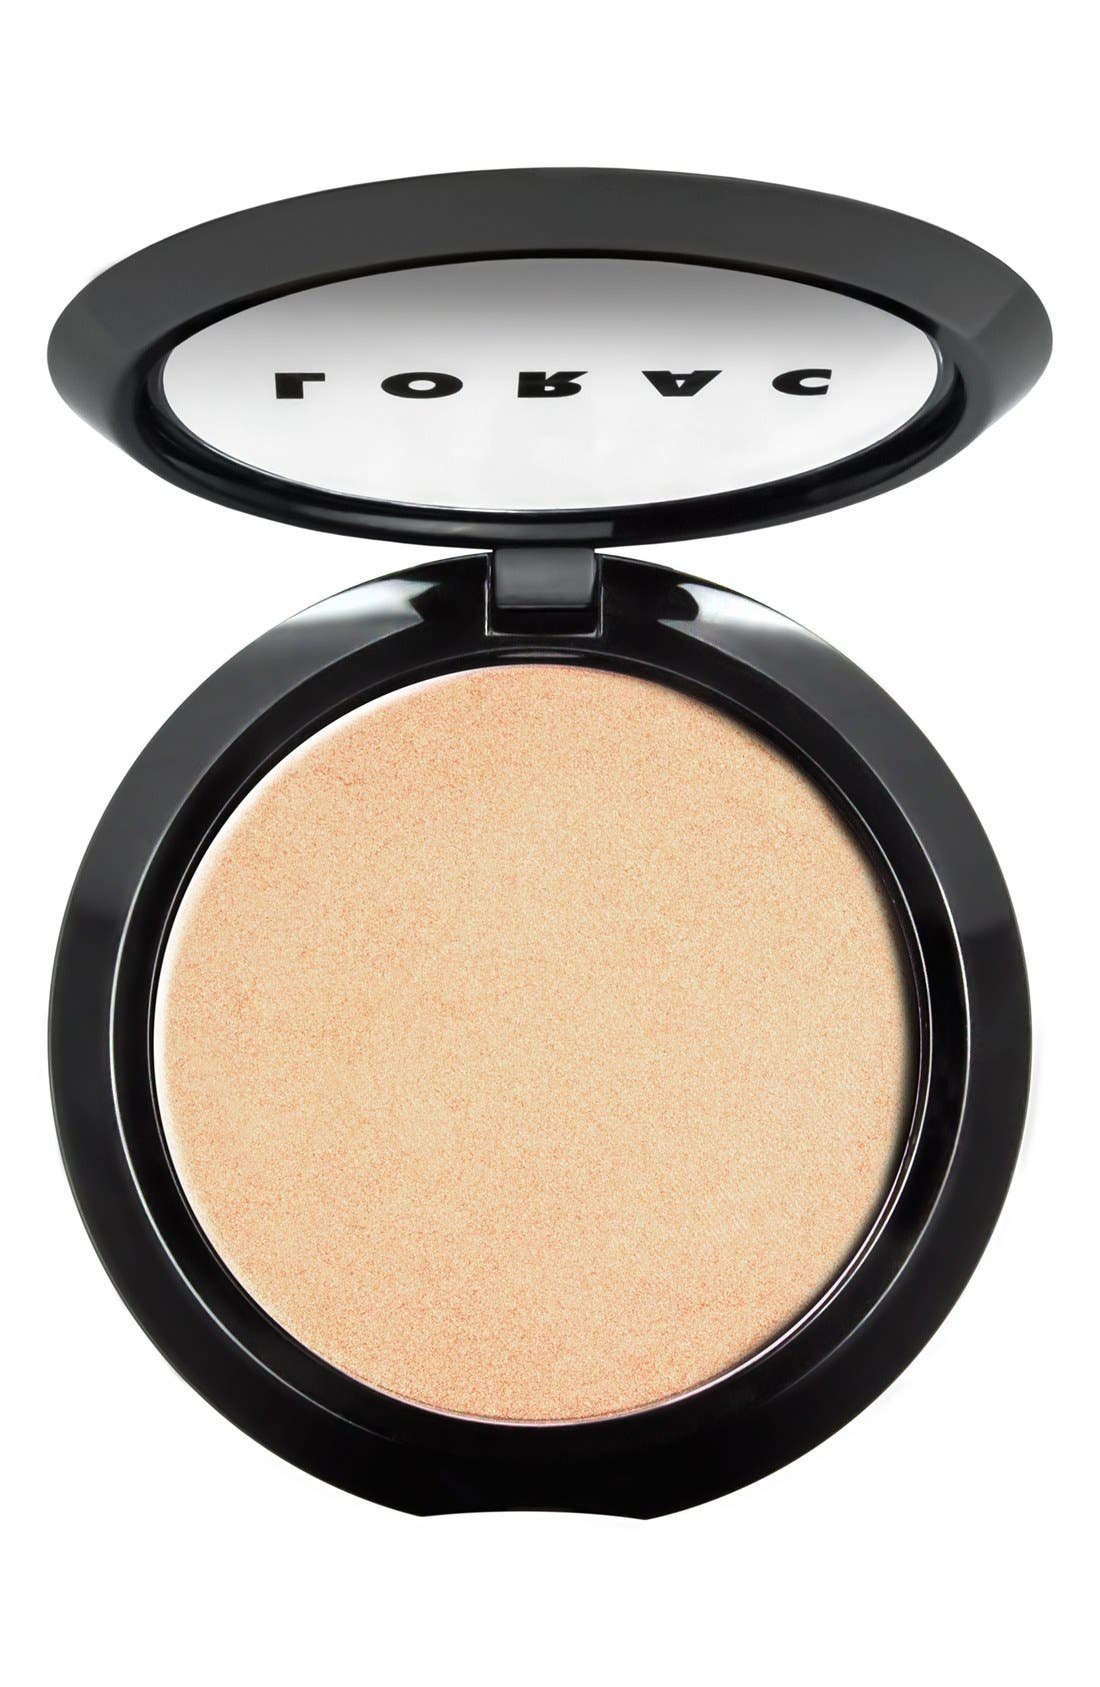 LORAC, 'Light Source' Illuminating Highlighter, Main thumbnail 1, color, 100